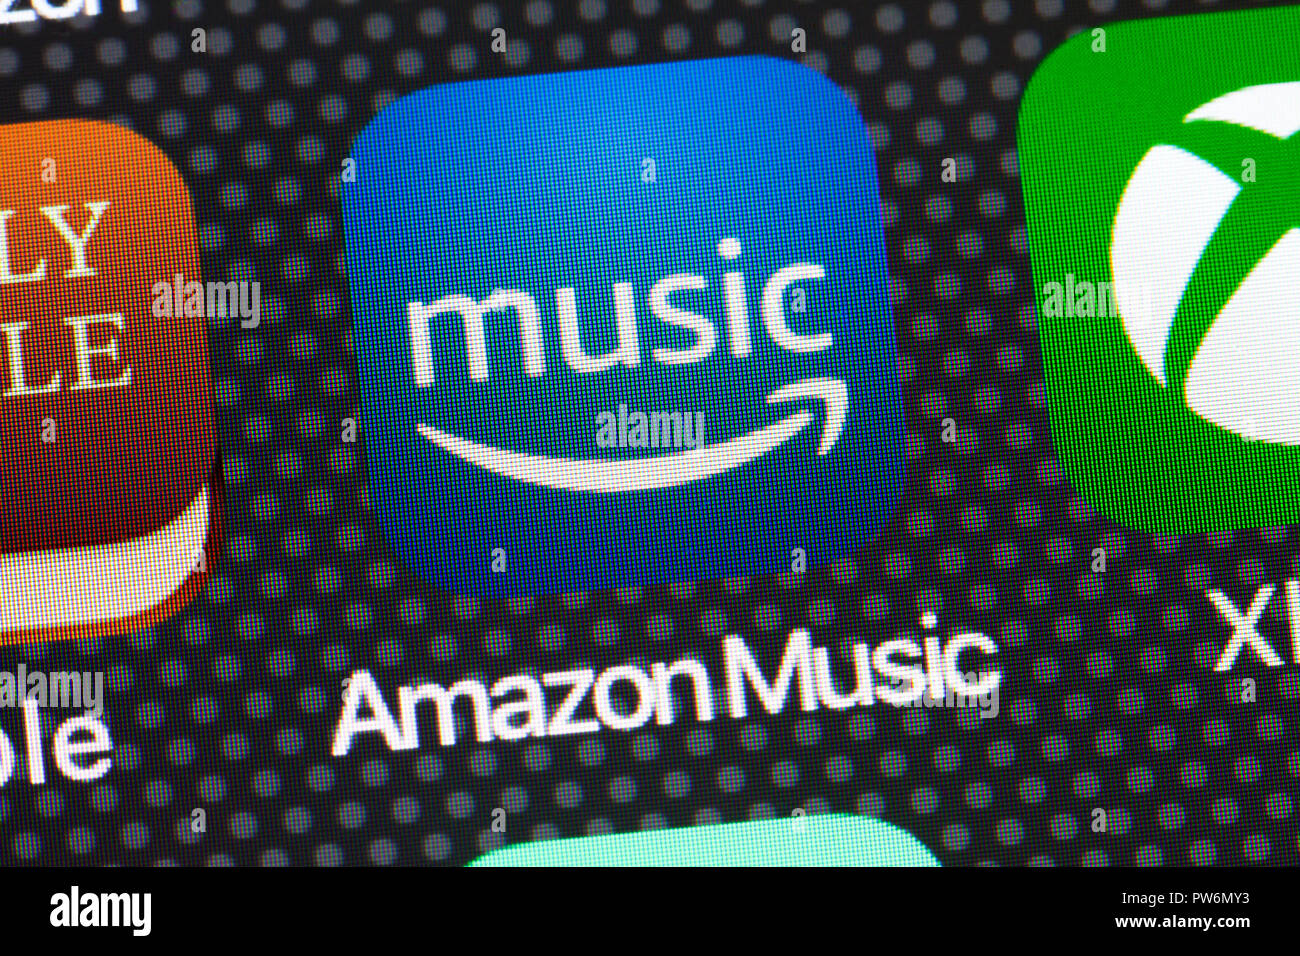 amazon music labels